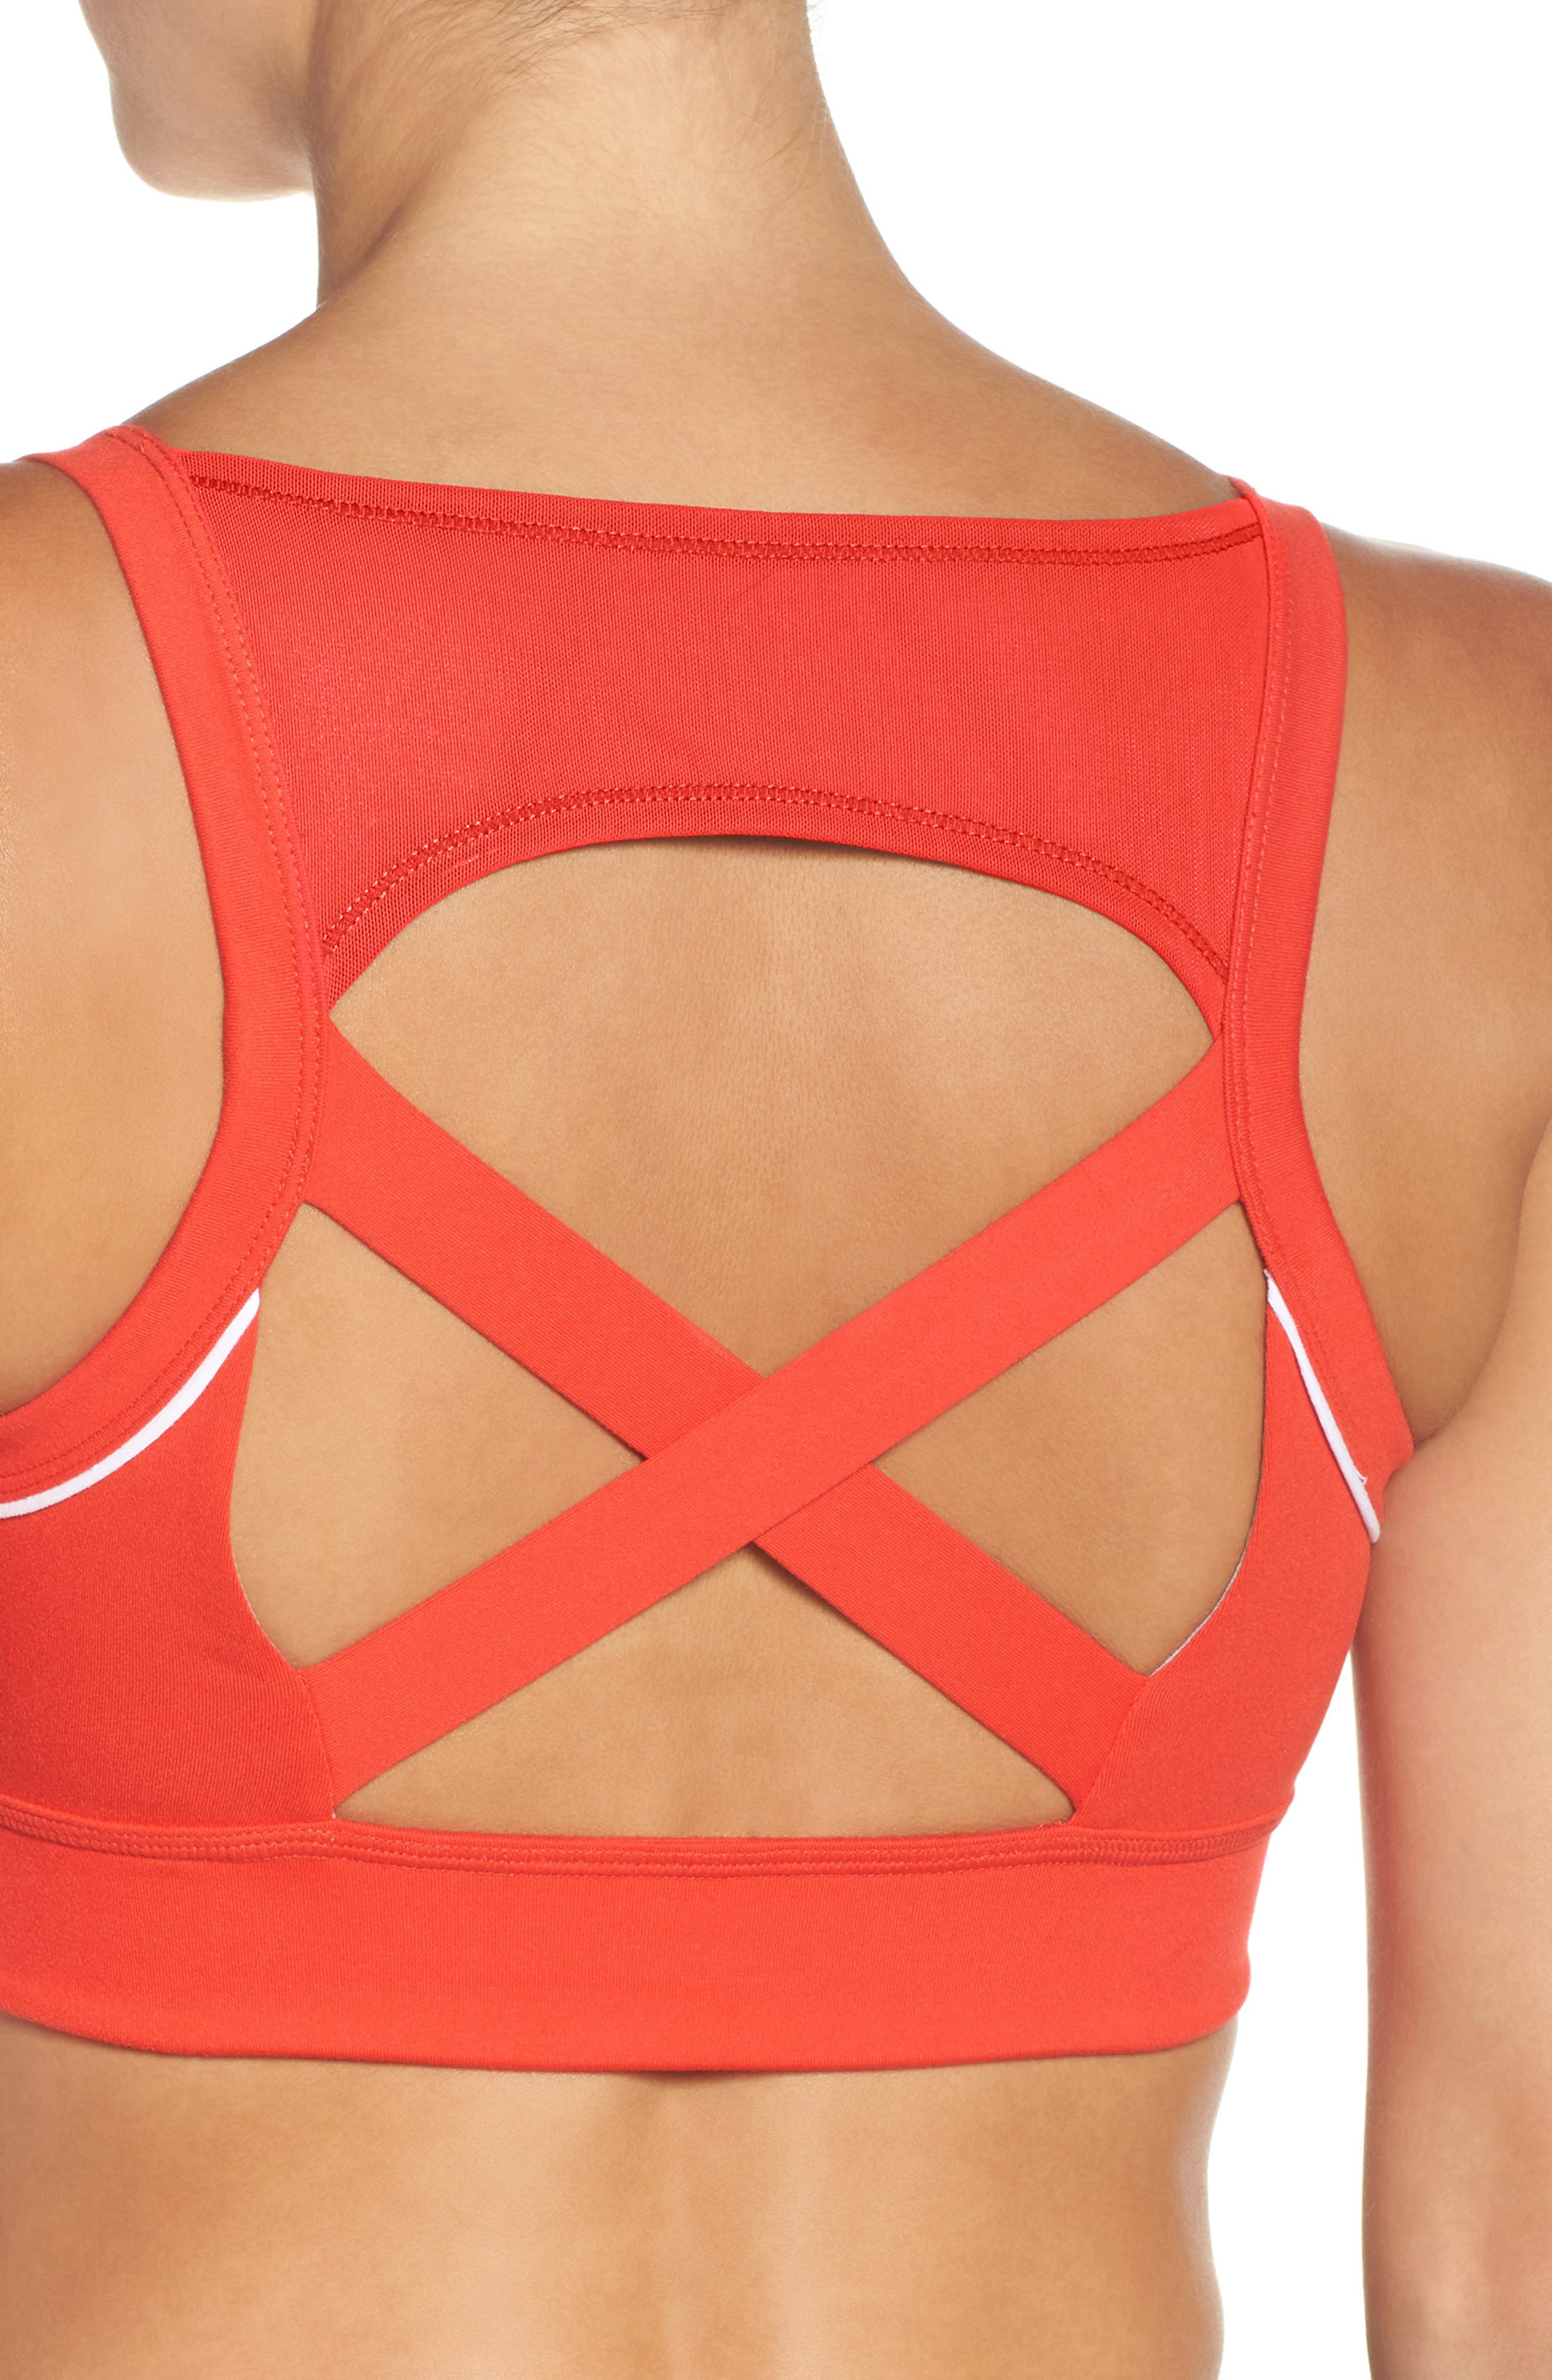 Harness Sports Bra,                             Alternate thumbnail 2, color,                             Red Fiery